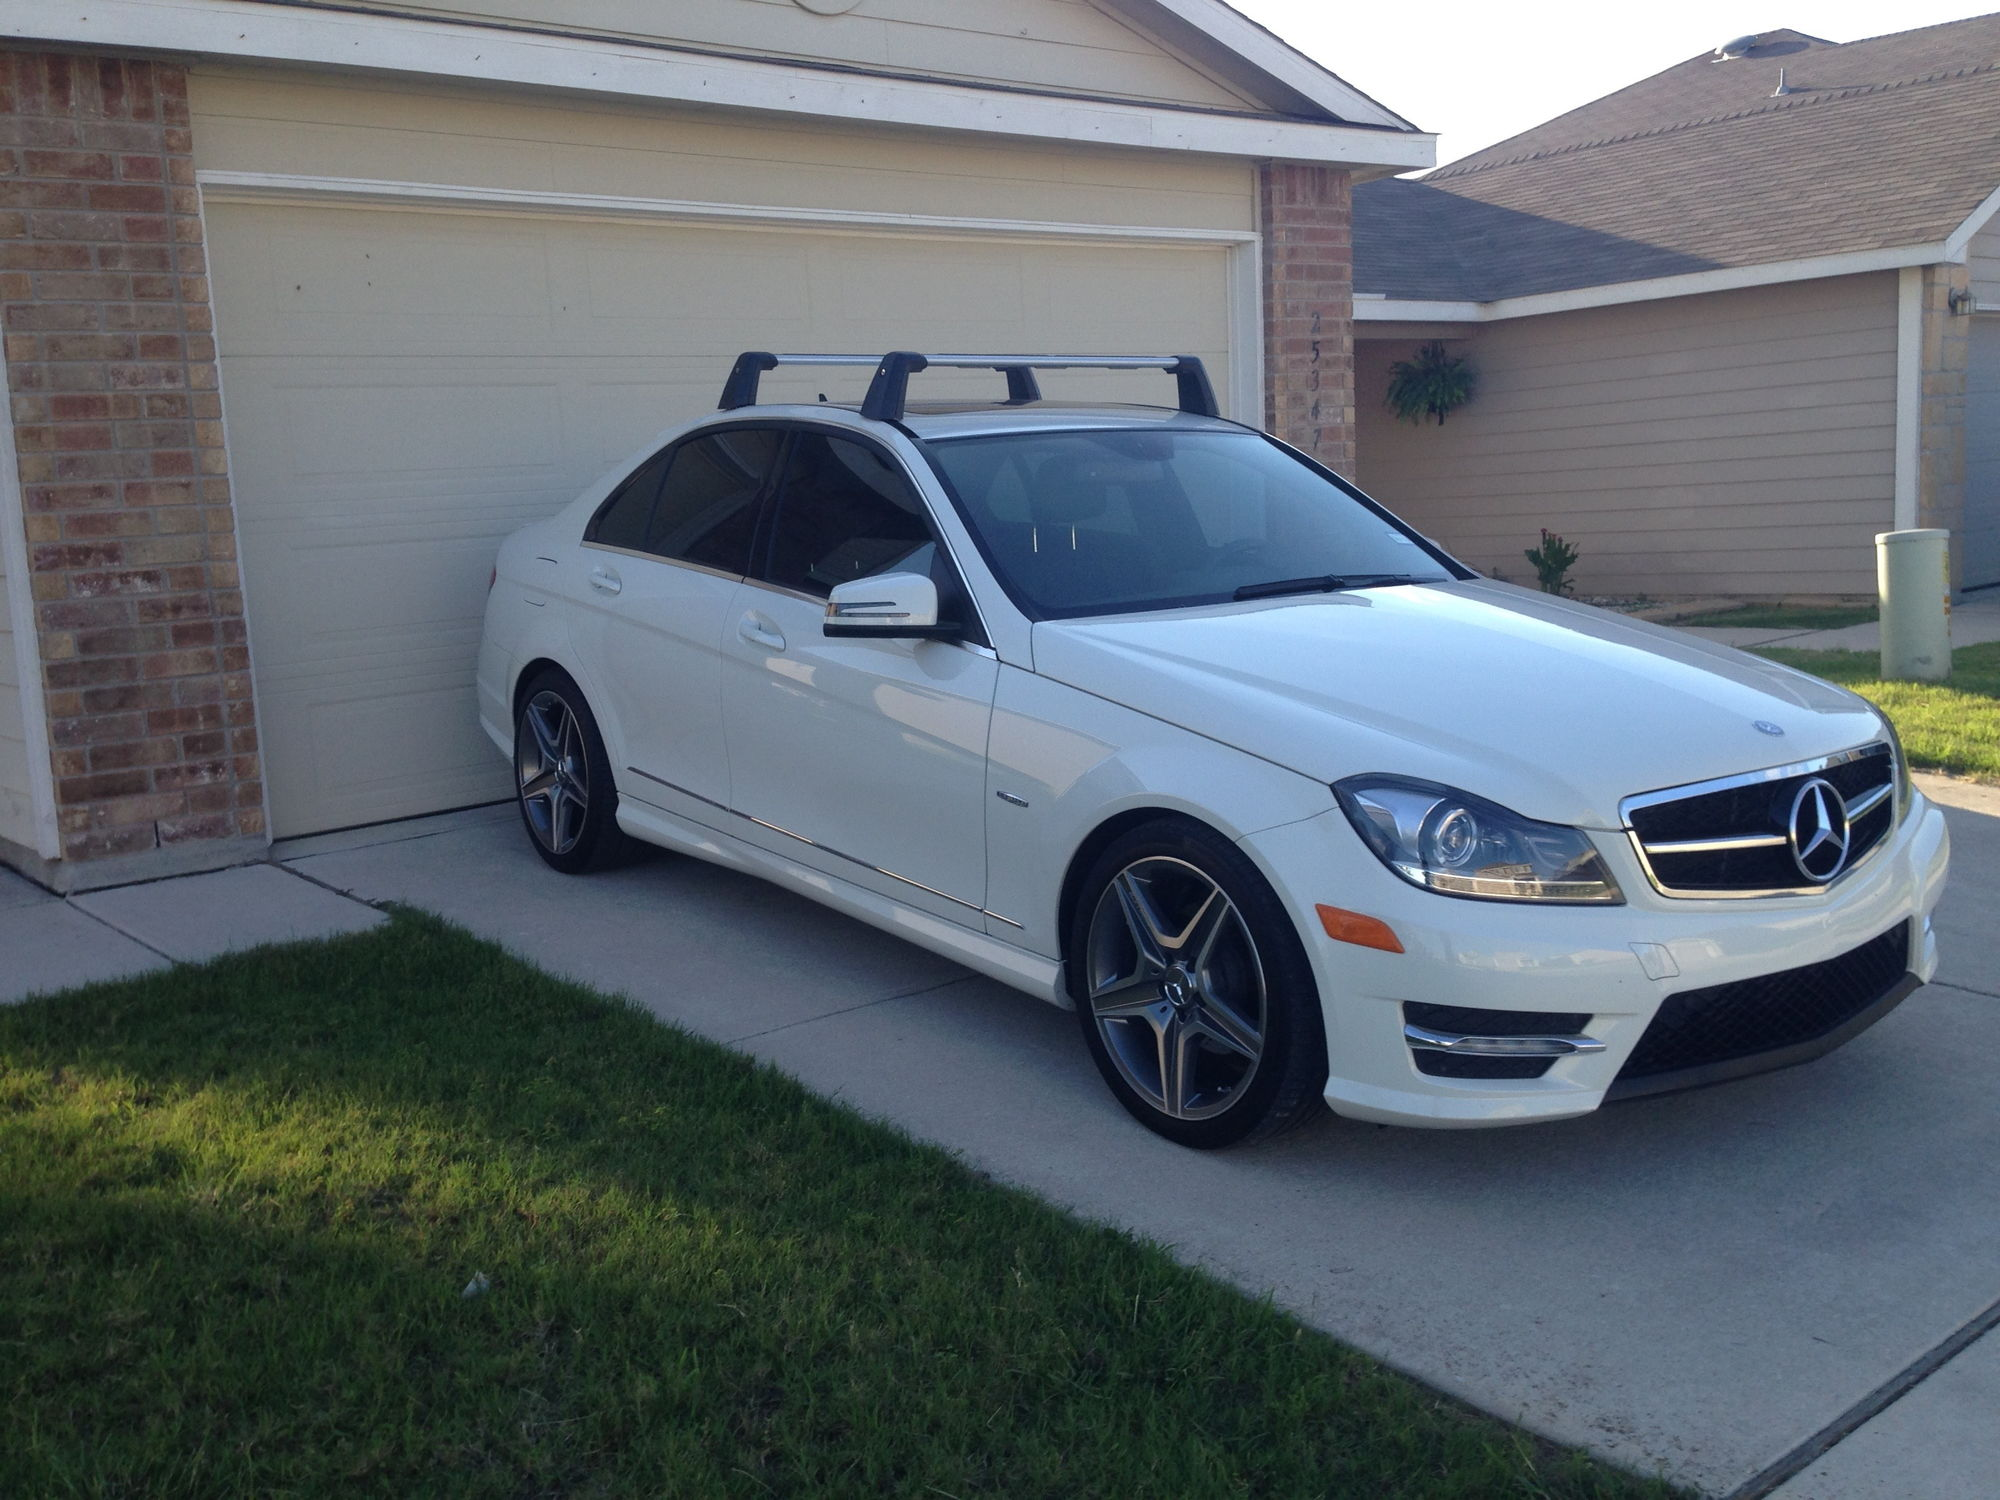 Fs Oem W204 Roof Rack W 2 Bike Carriers Mbworld Org Forums